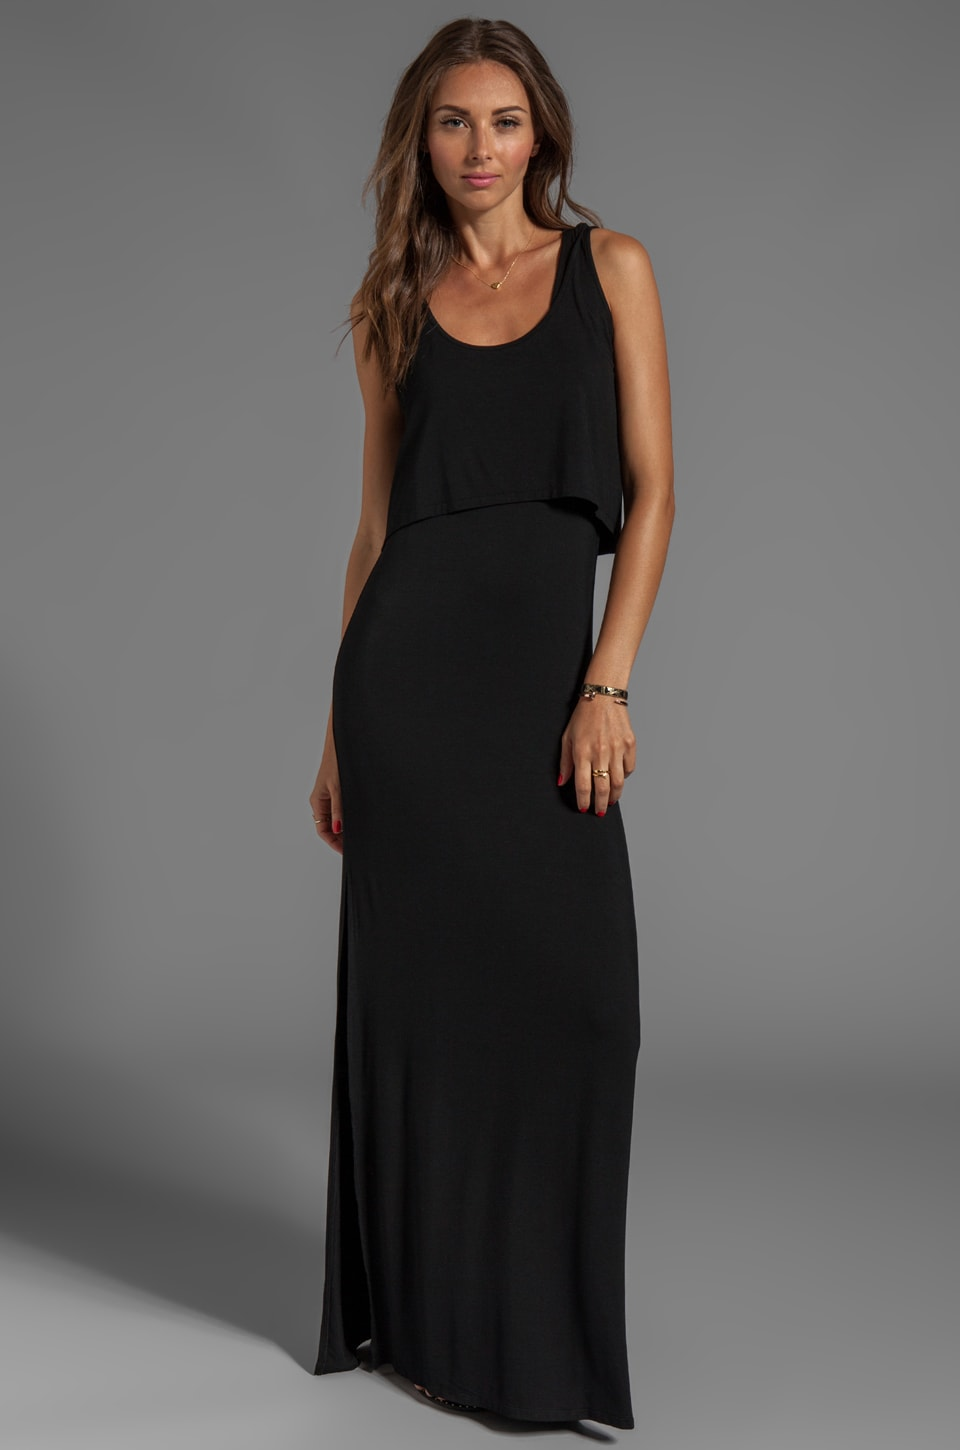 Lovers + Friends Hello Goodbye Maxi Dress in Black